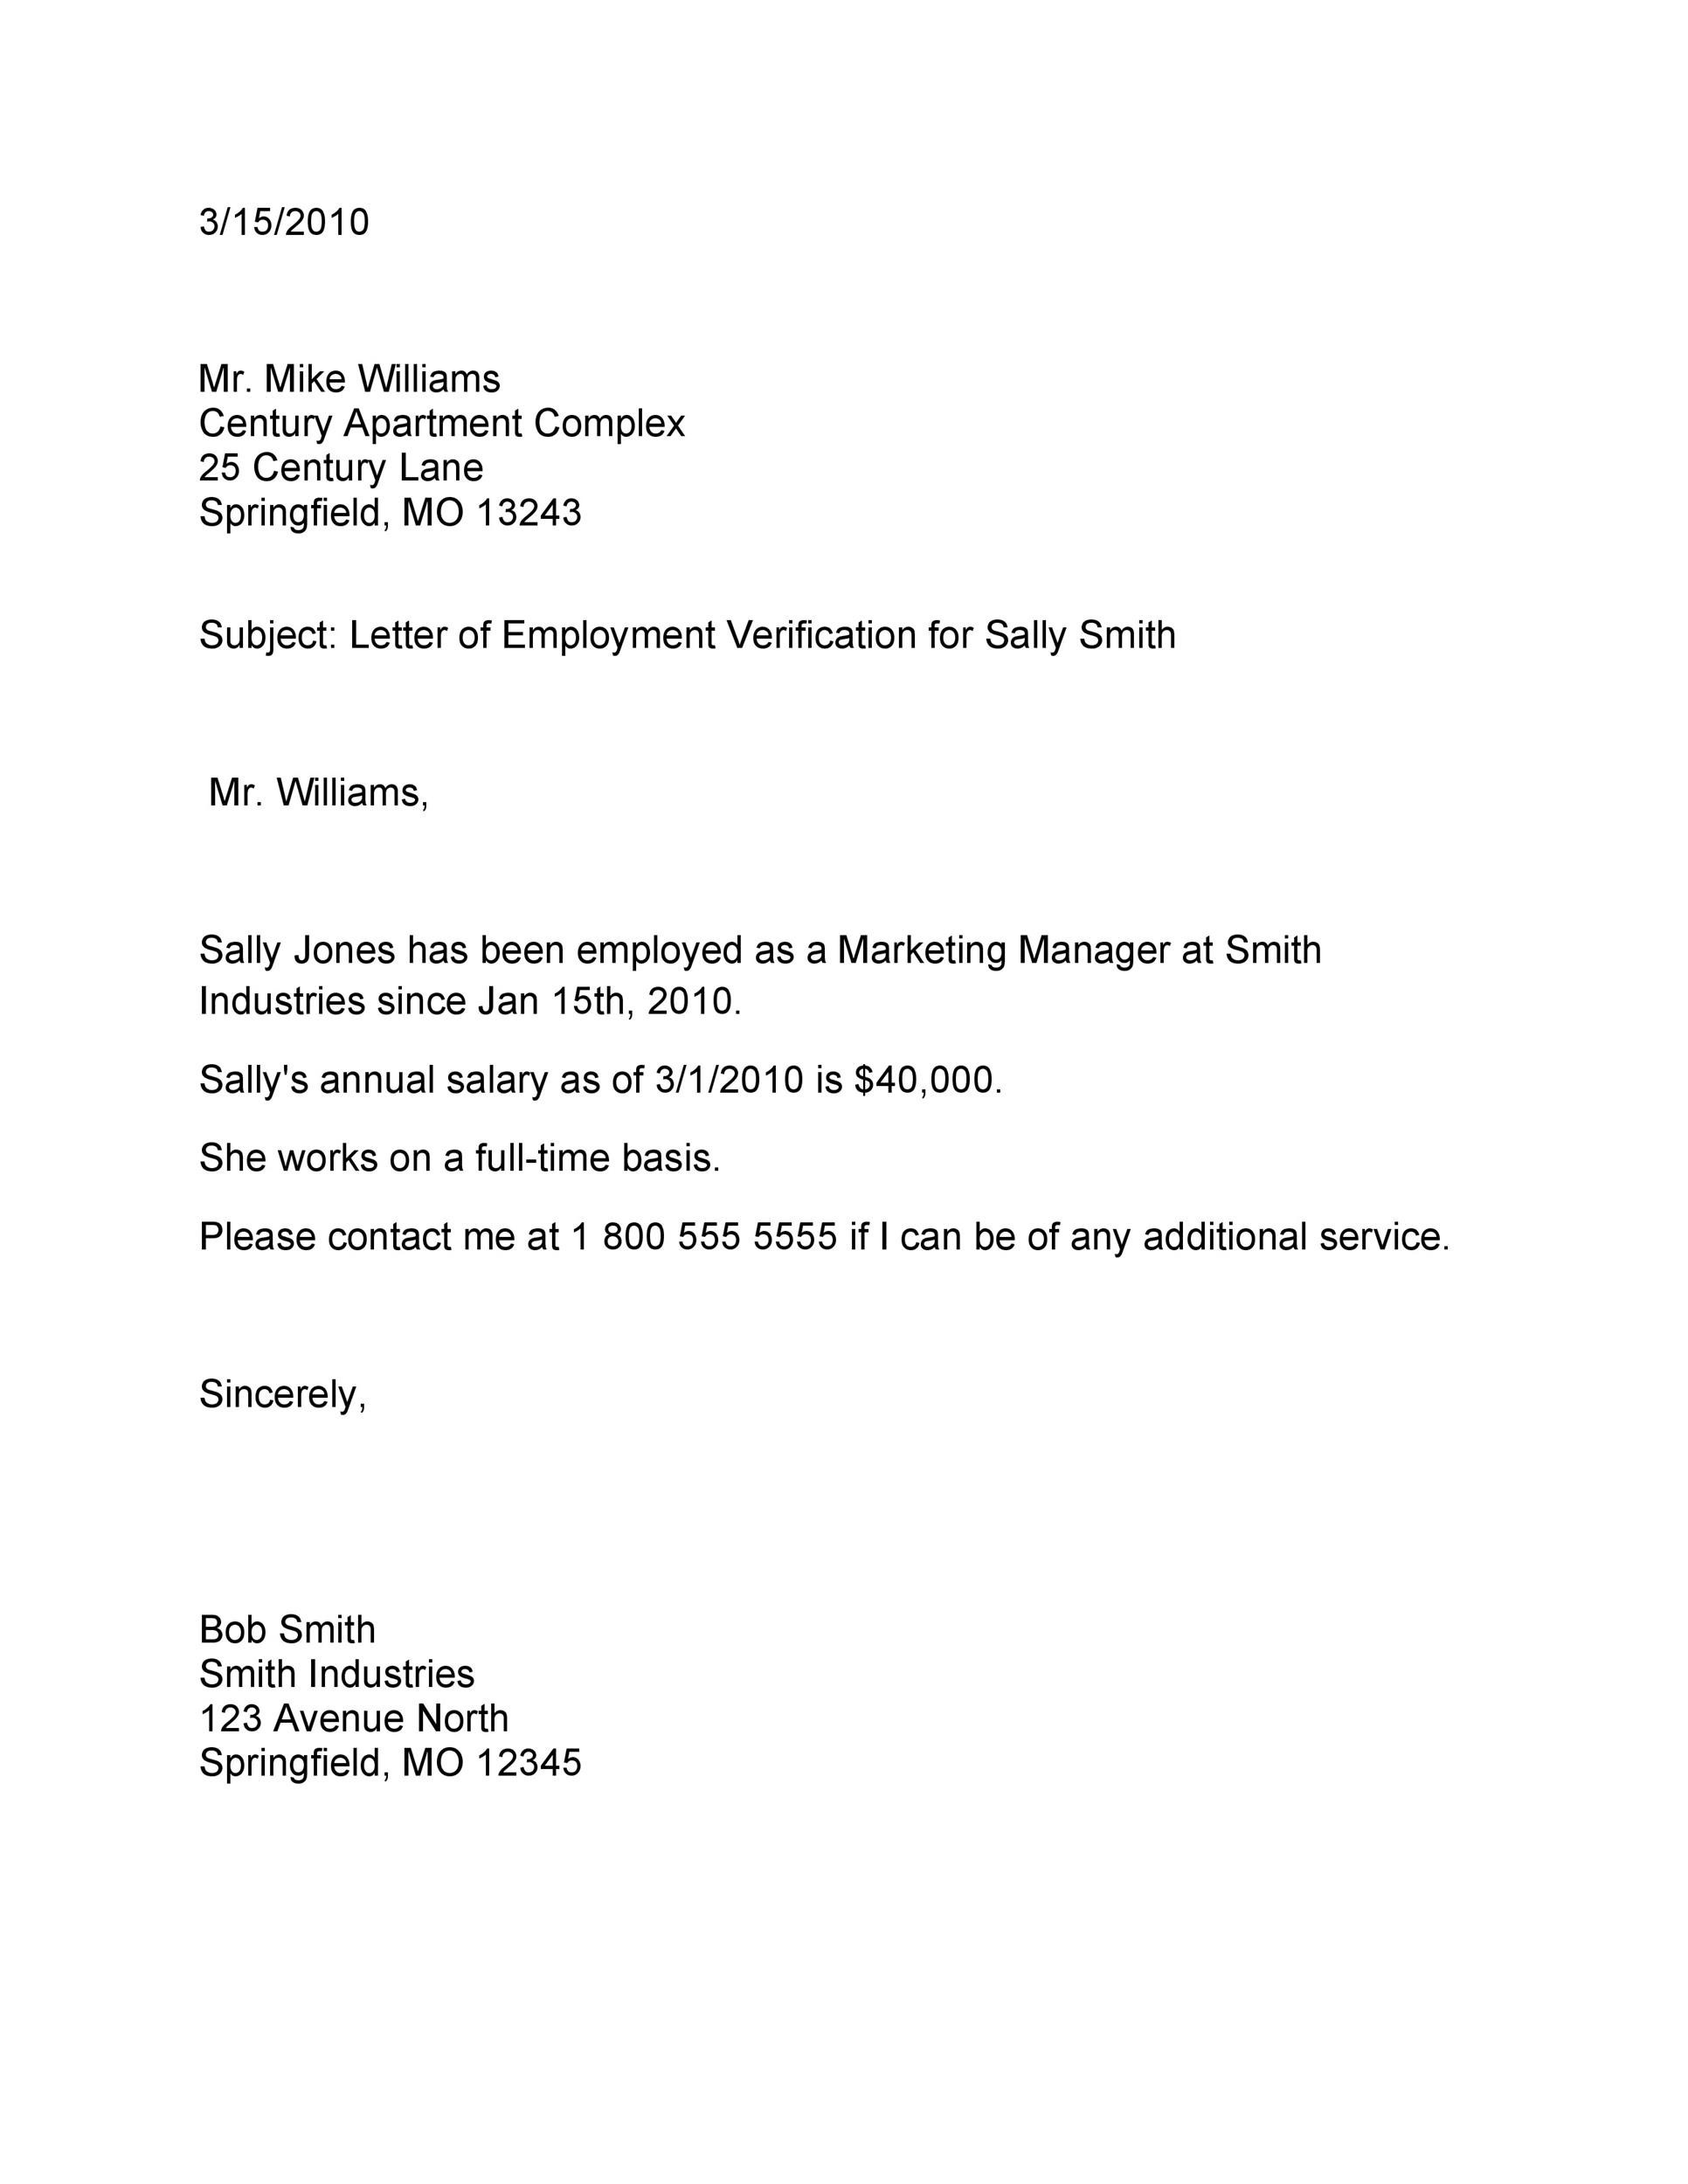 Employment Letter Sample Temporary Job Resignation Letter Sample